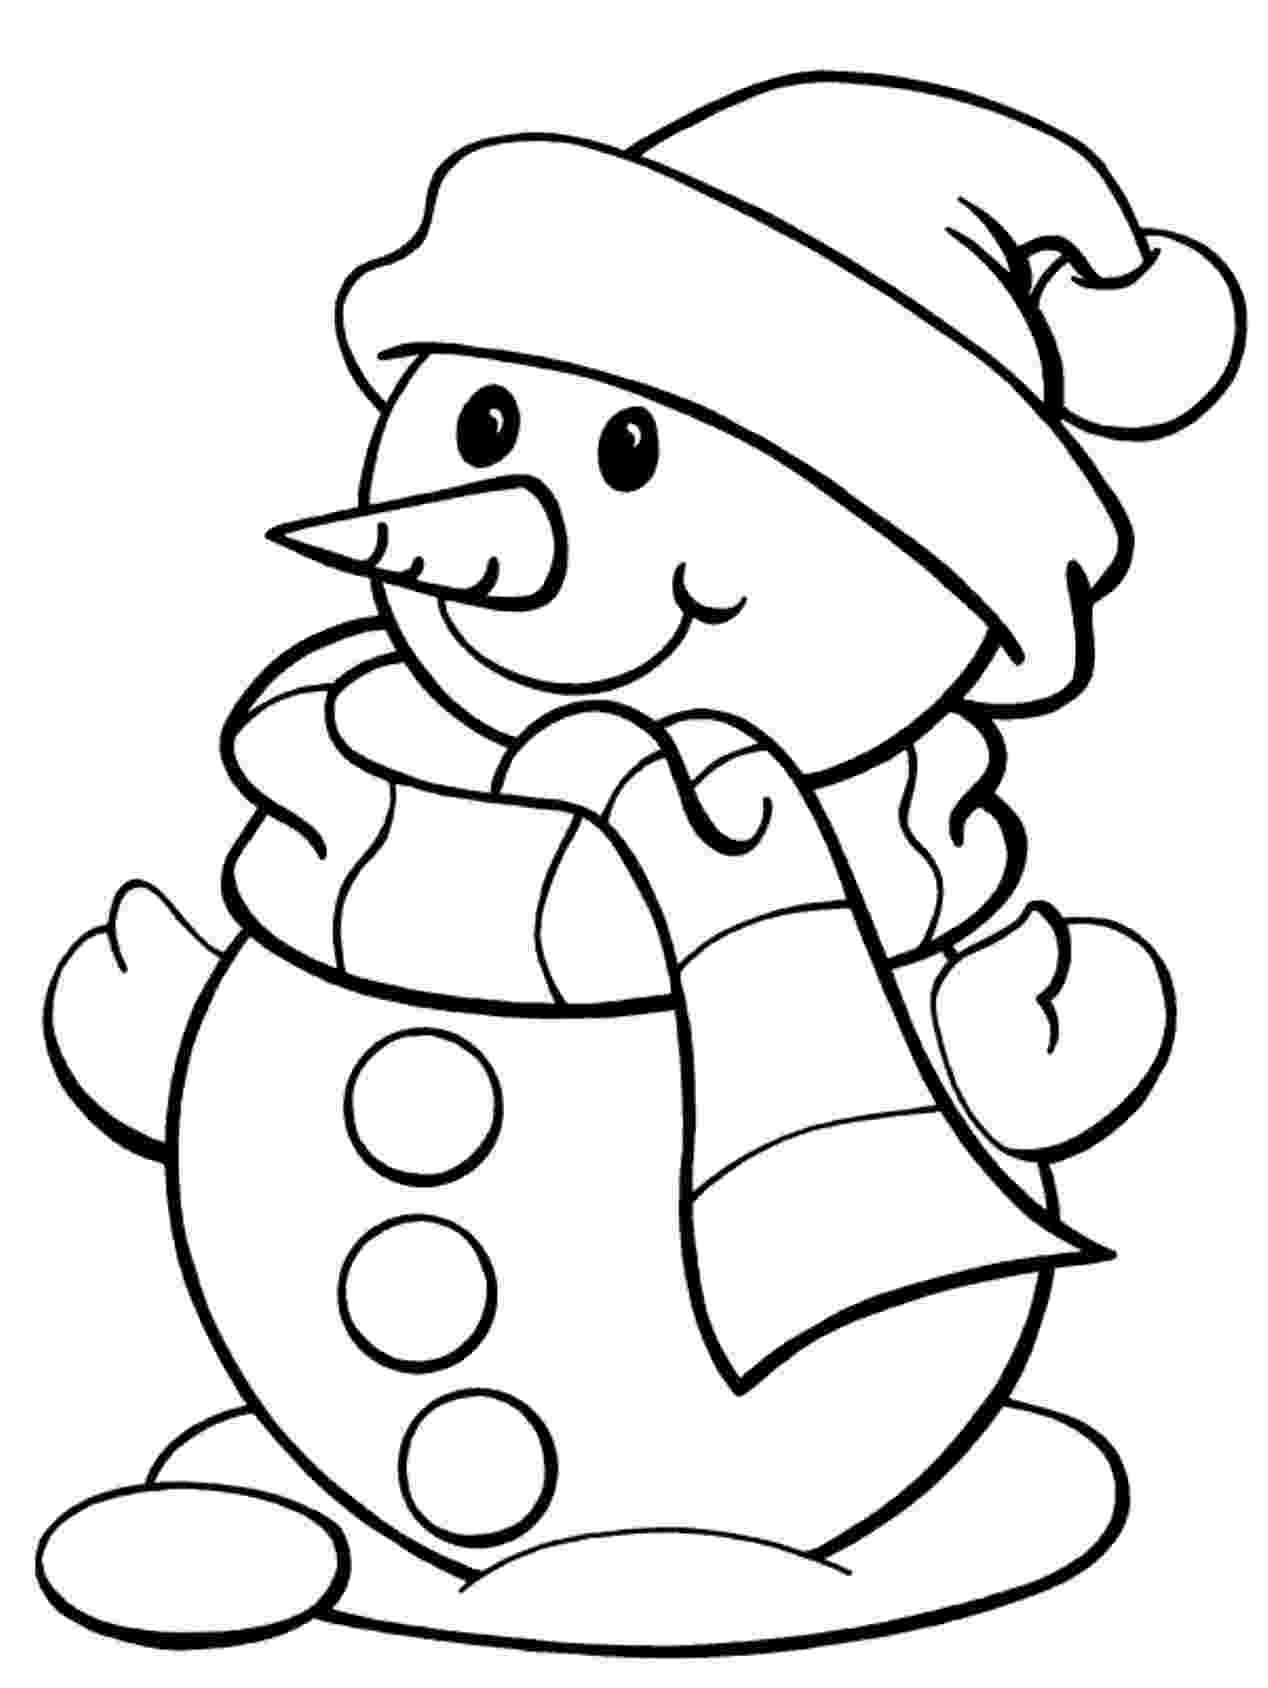 winter color sheets winter puzzle coloring pages printable winter themed sheets color winter